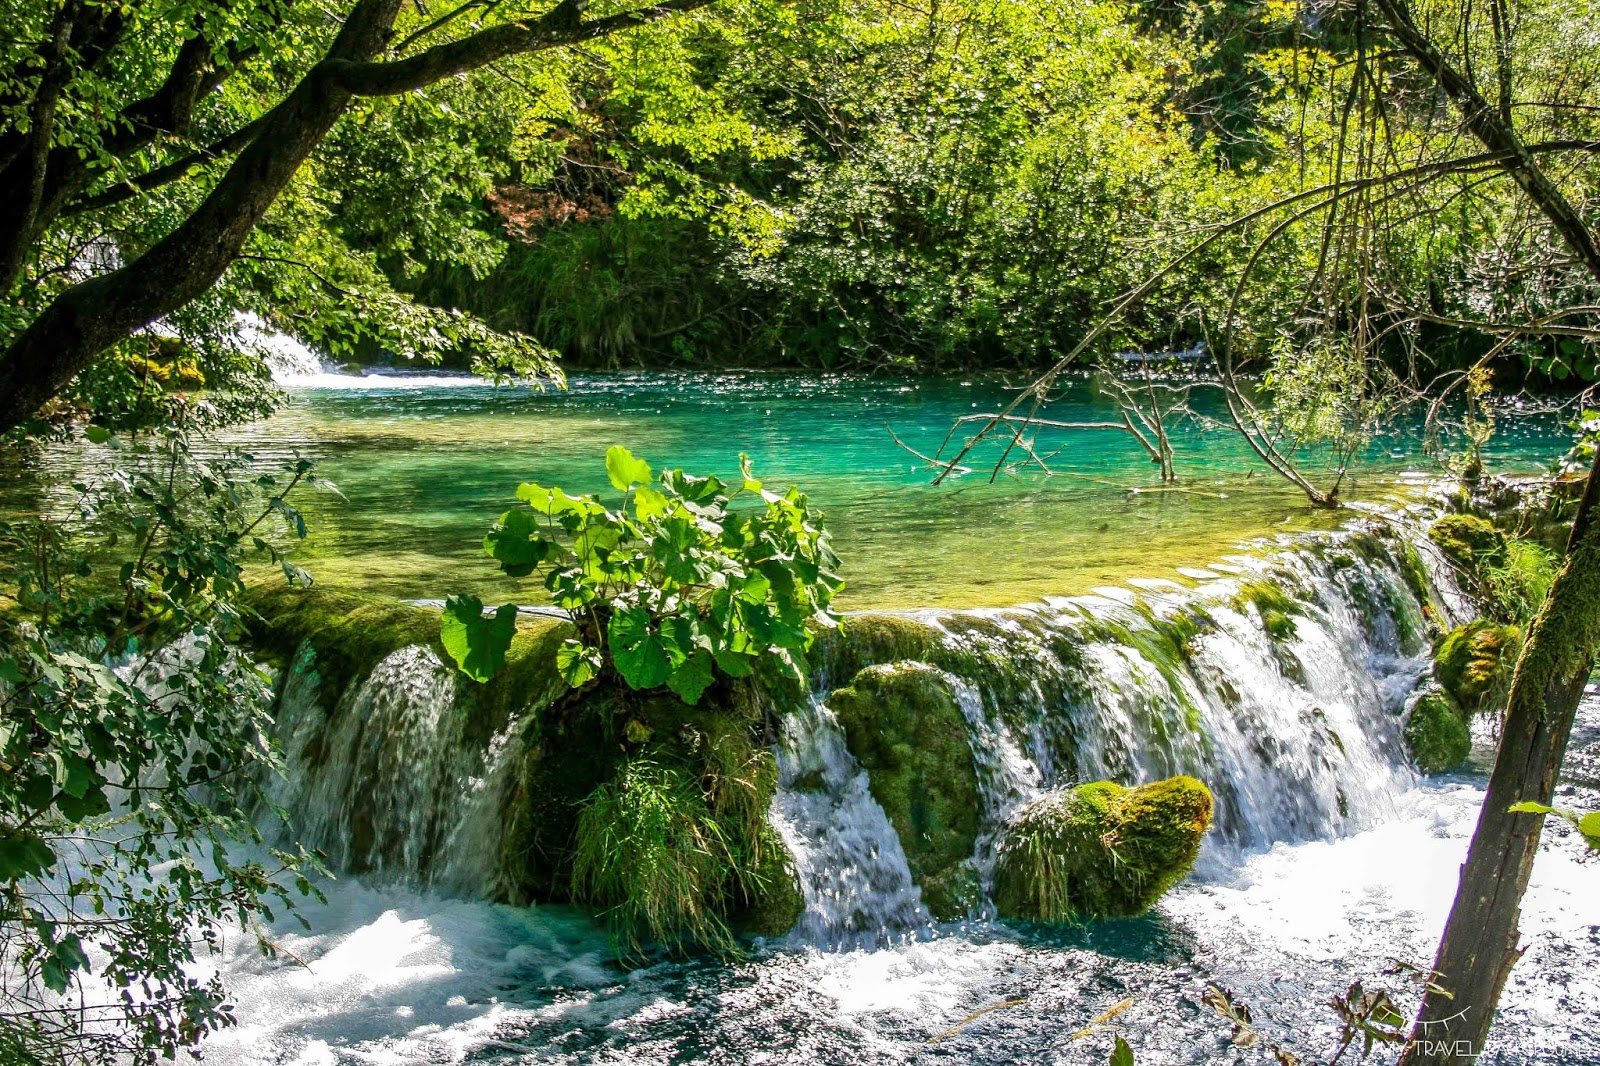 My Travel Background : Explorer les lacs de Plitvice en Croatie